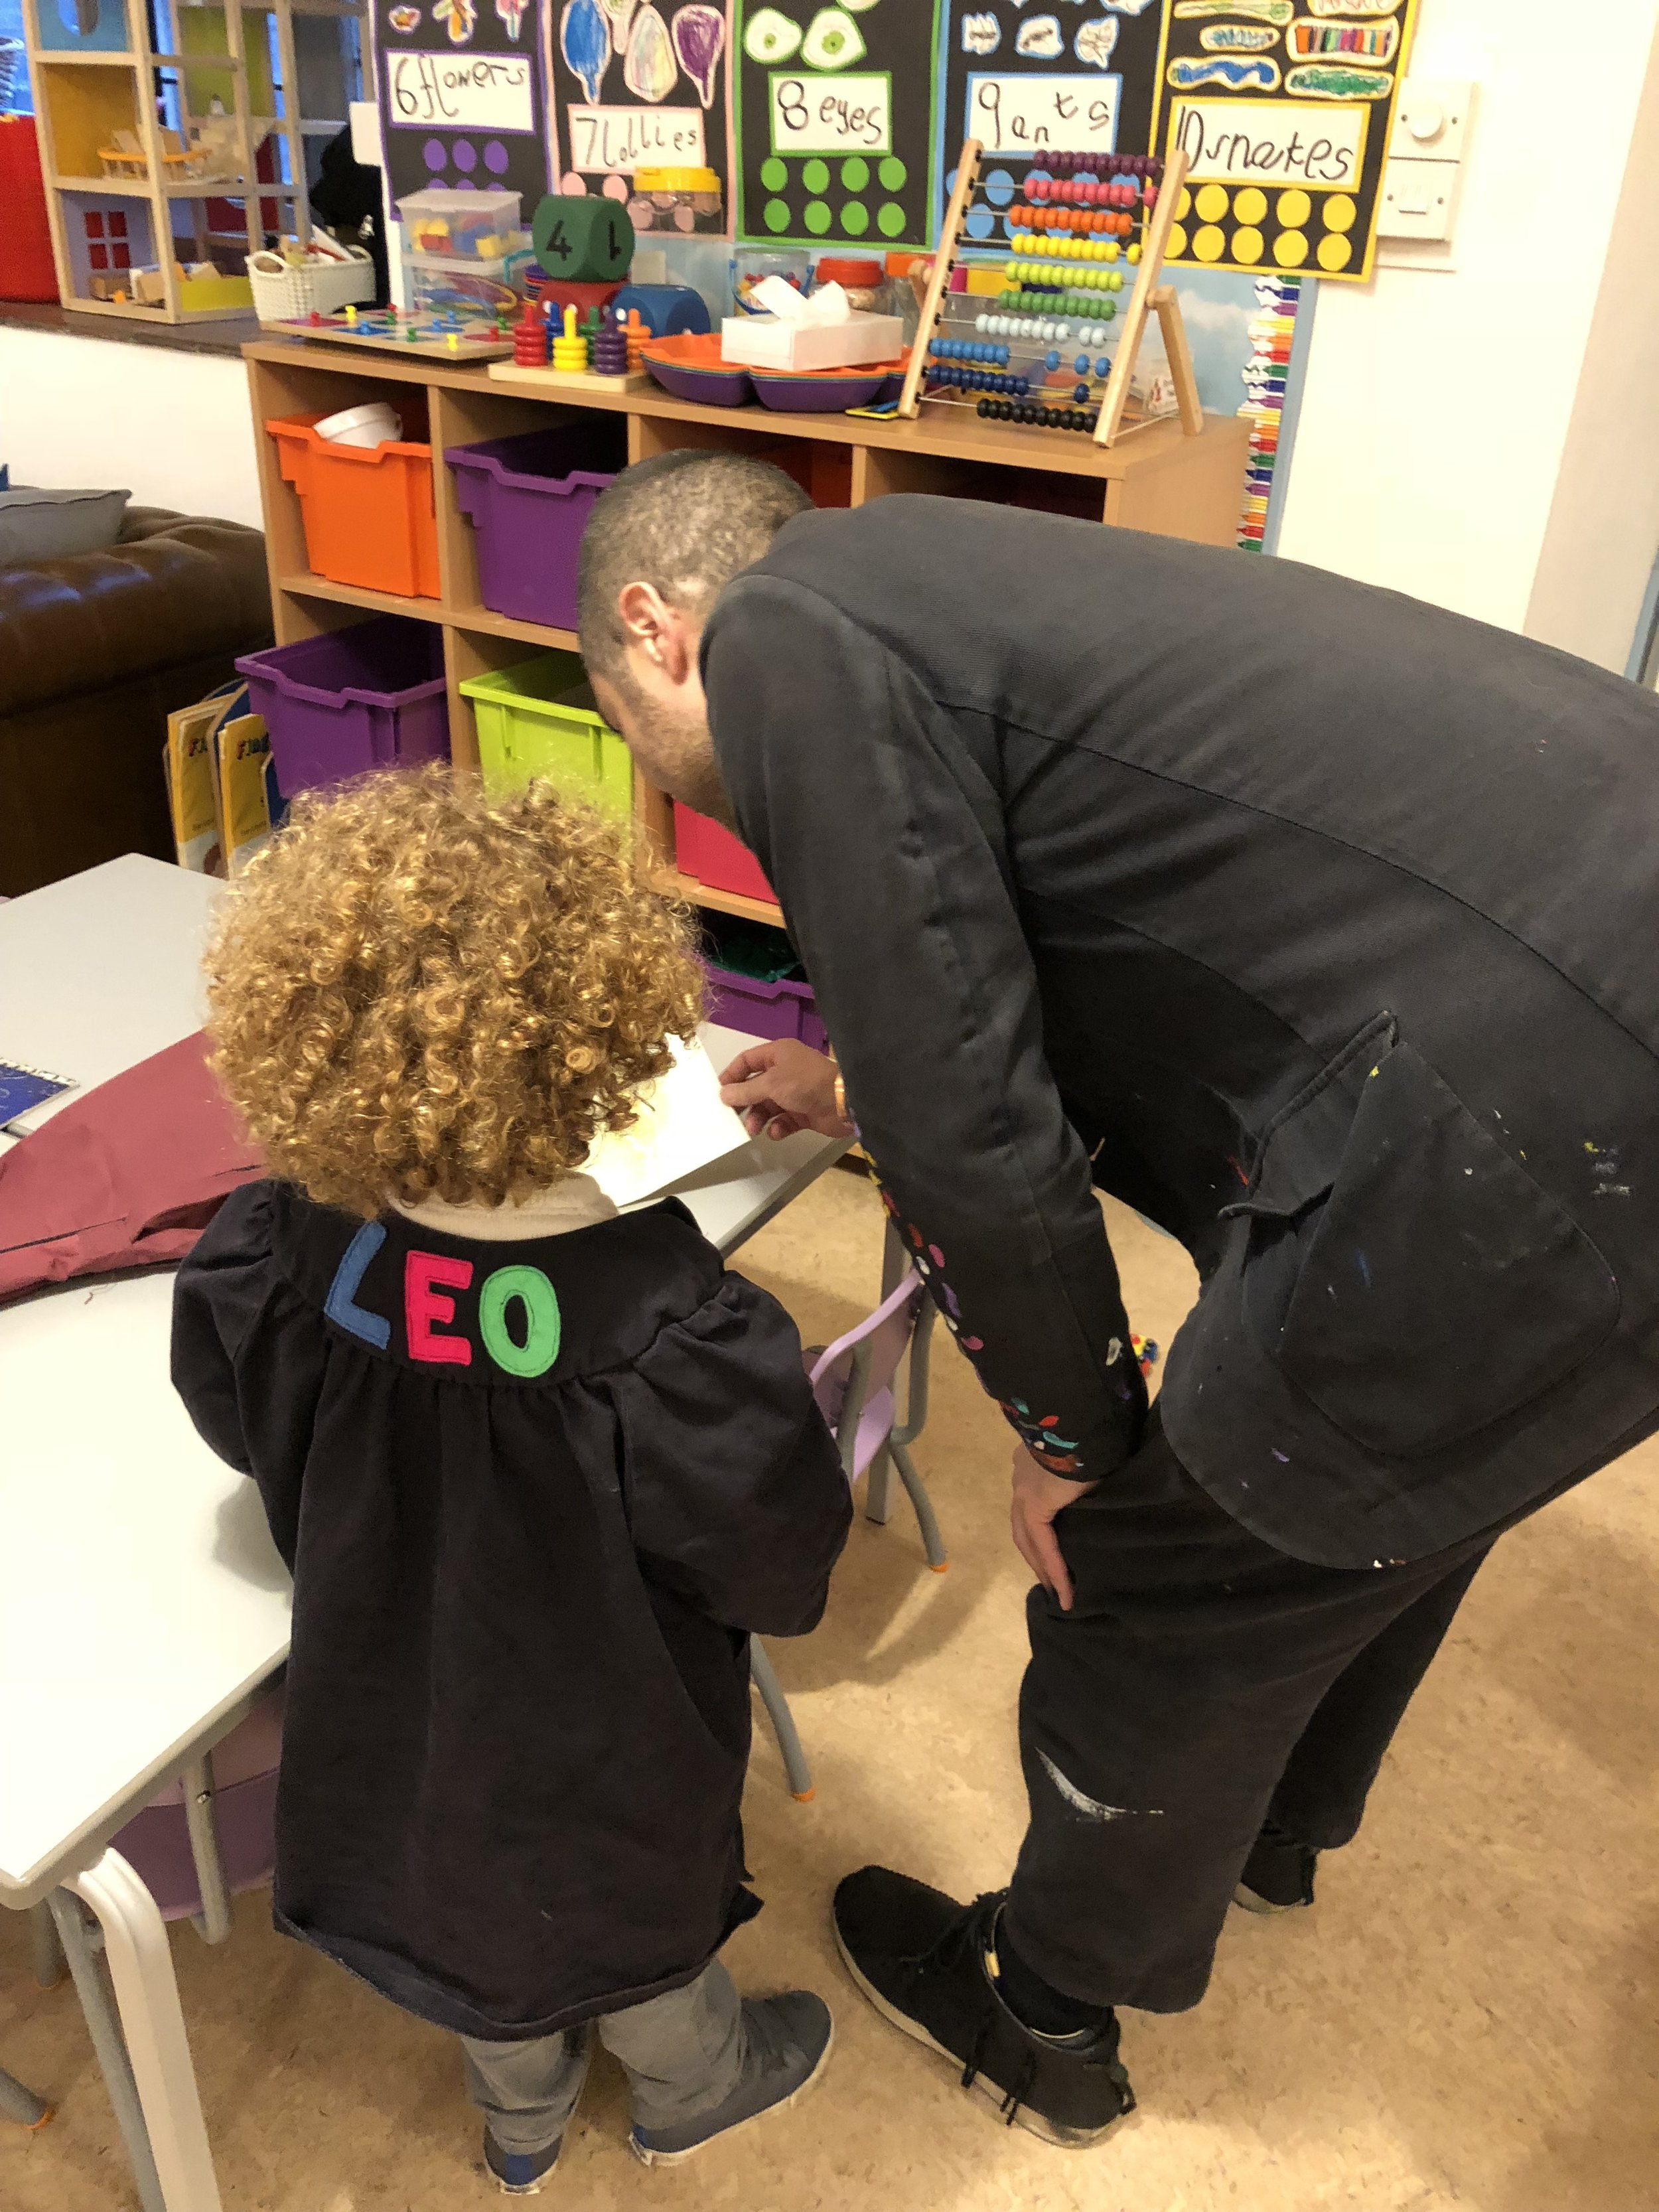 Robi recently visited and gave a presentation to the children at St Marks primary school,Primrose Hill. The presentation was about Robi's new gallery in Soho and how he creates his art projects.